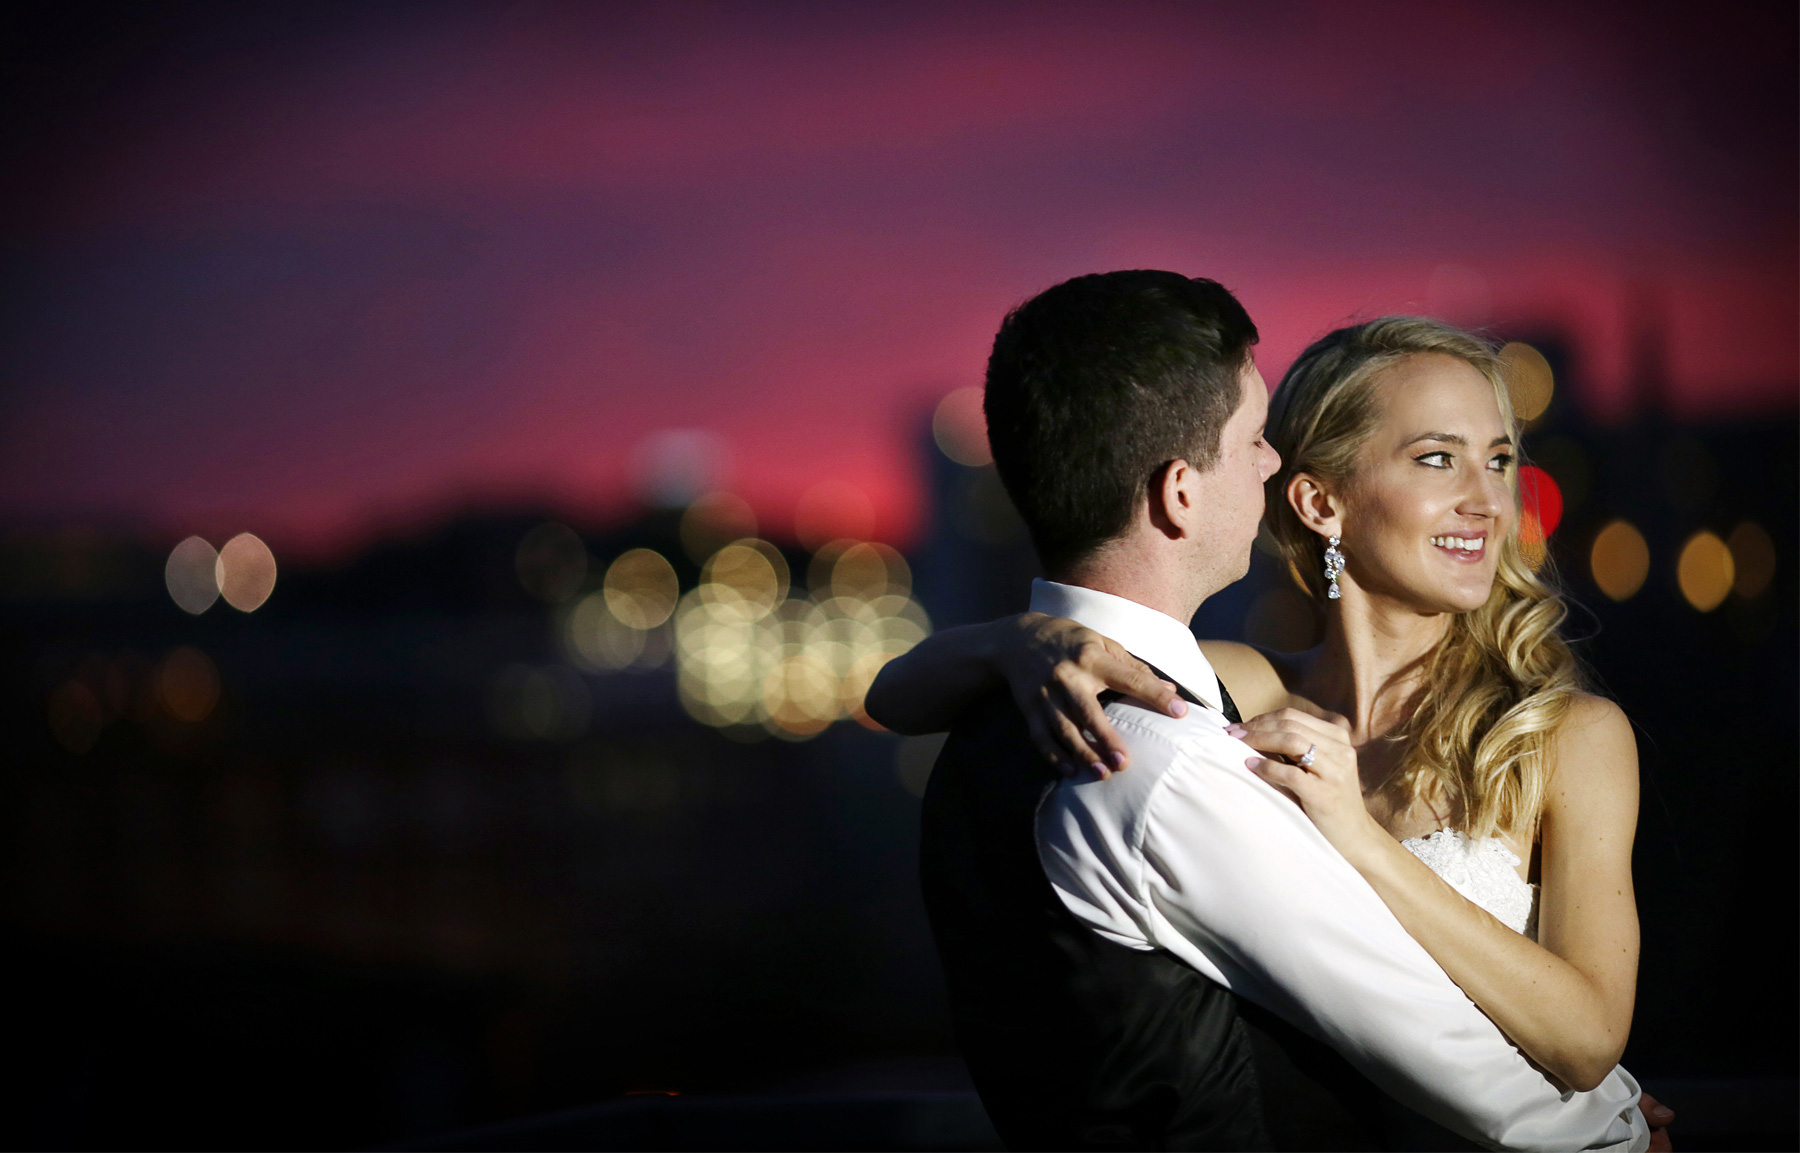 24-Saint-Paul-Minnesota-Wedding-Photographer-by-Andrew-Vick-Photography-Summer-Bride-Groom-Night-Romance-Laura-and-Tim.jpg